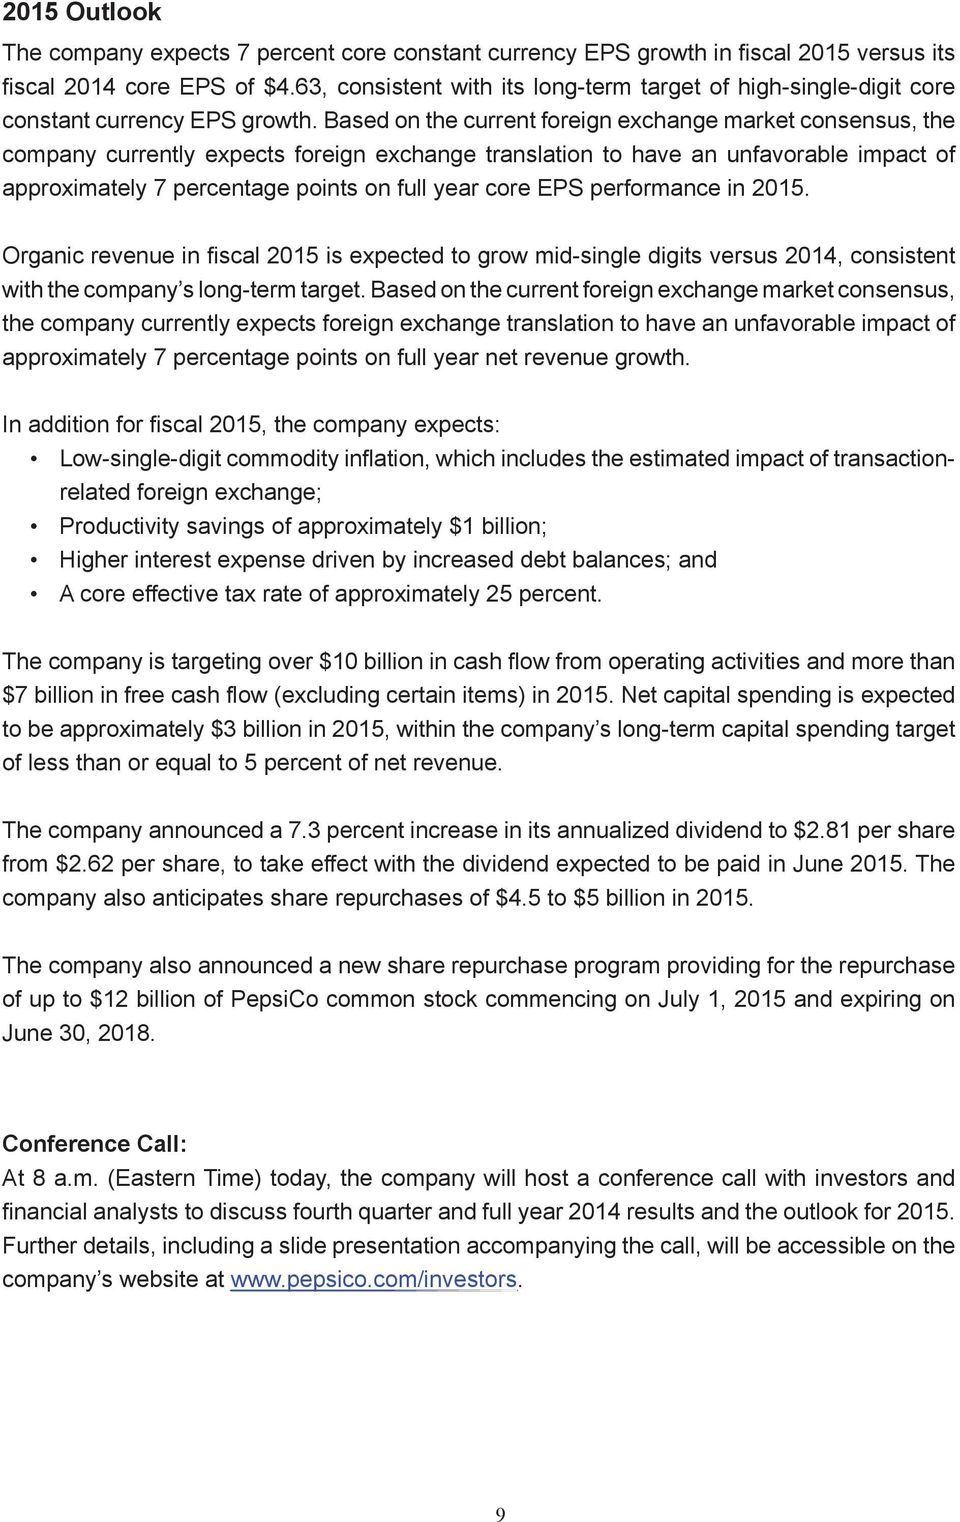 Based on the current foreign exchange market consensus, the company currently expects foreign exchange translation to have an unfavorable impact of approximately 7 percentage points on full year core